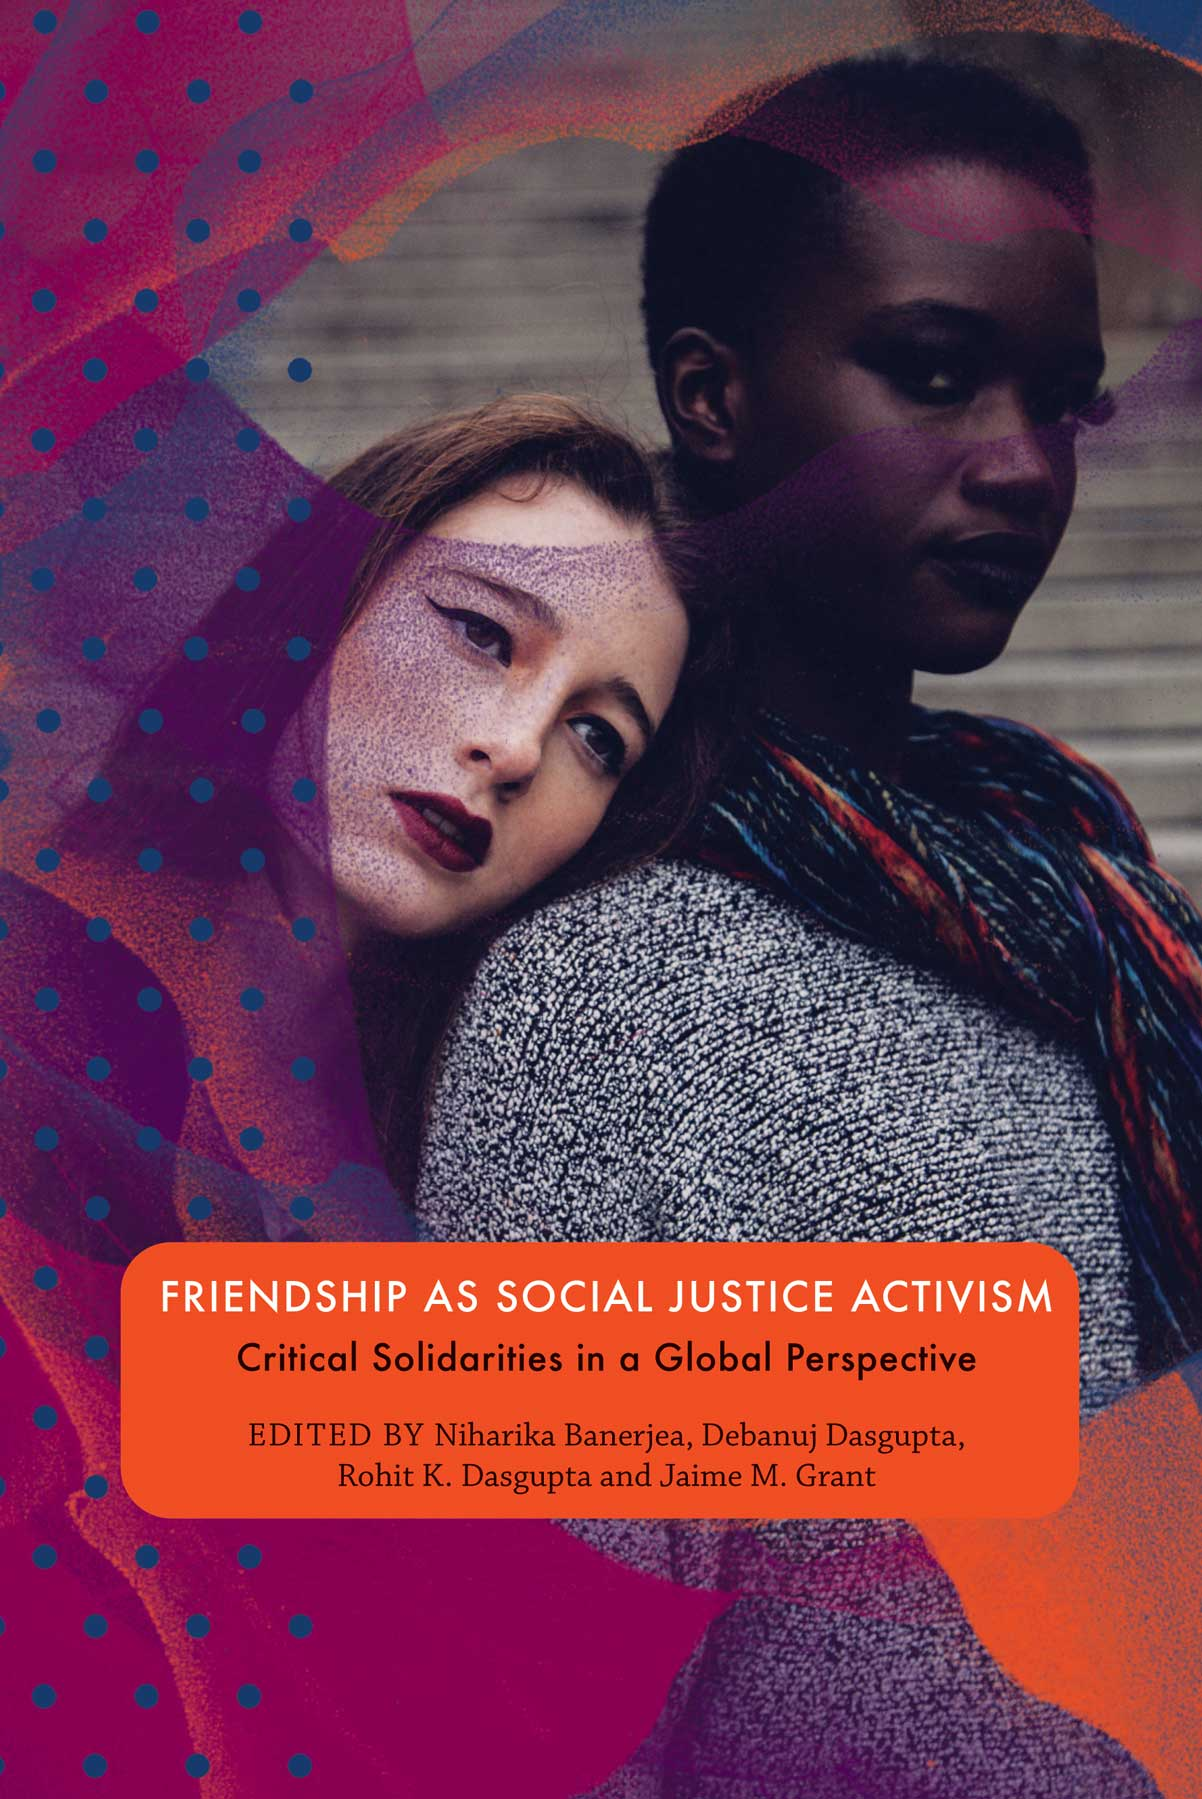 Friendship as Social Justice Activism: Critical Solidarities in a Global Perspective. Edited by Niharika Banerjea, Debanuj DasGupta, Rohit K. Dasgupta, and Jaime M. Grant | Seagull Books